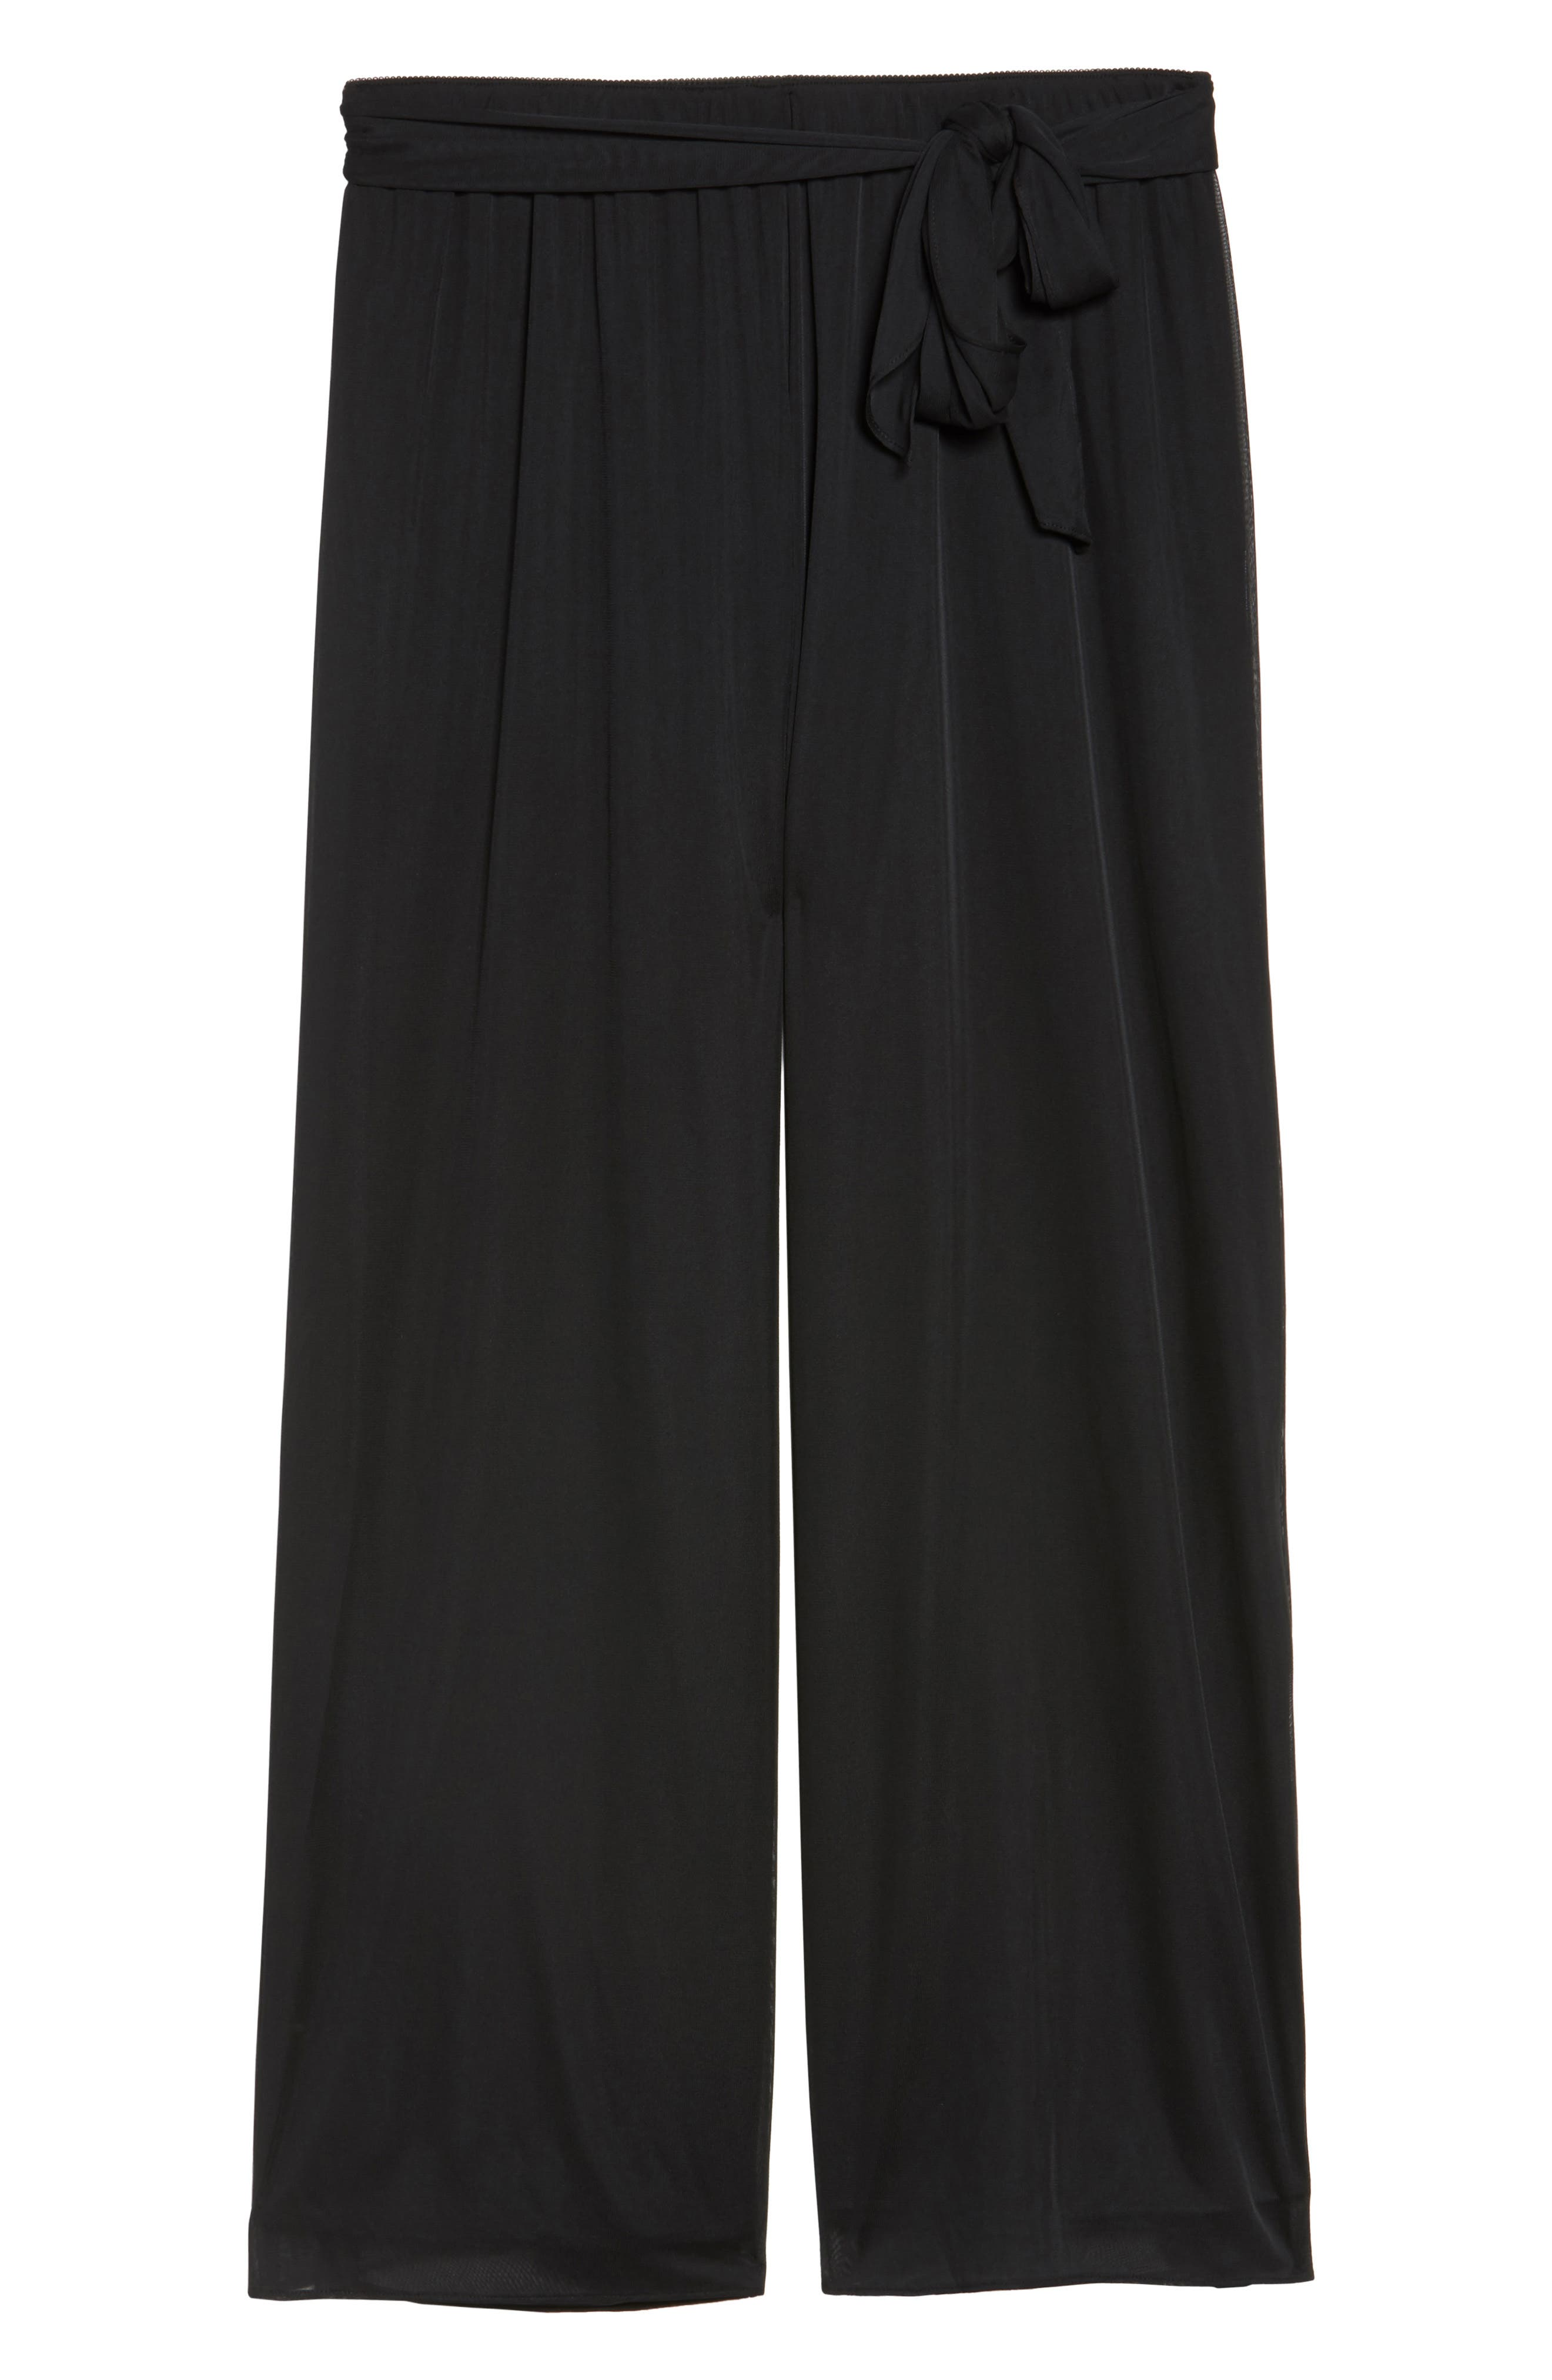 Tie Waist Wide Leg Pants,                             Alternate thumbnail 6, color,                             Black